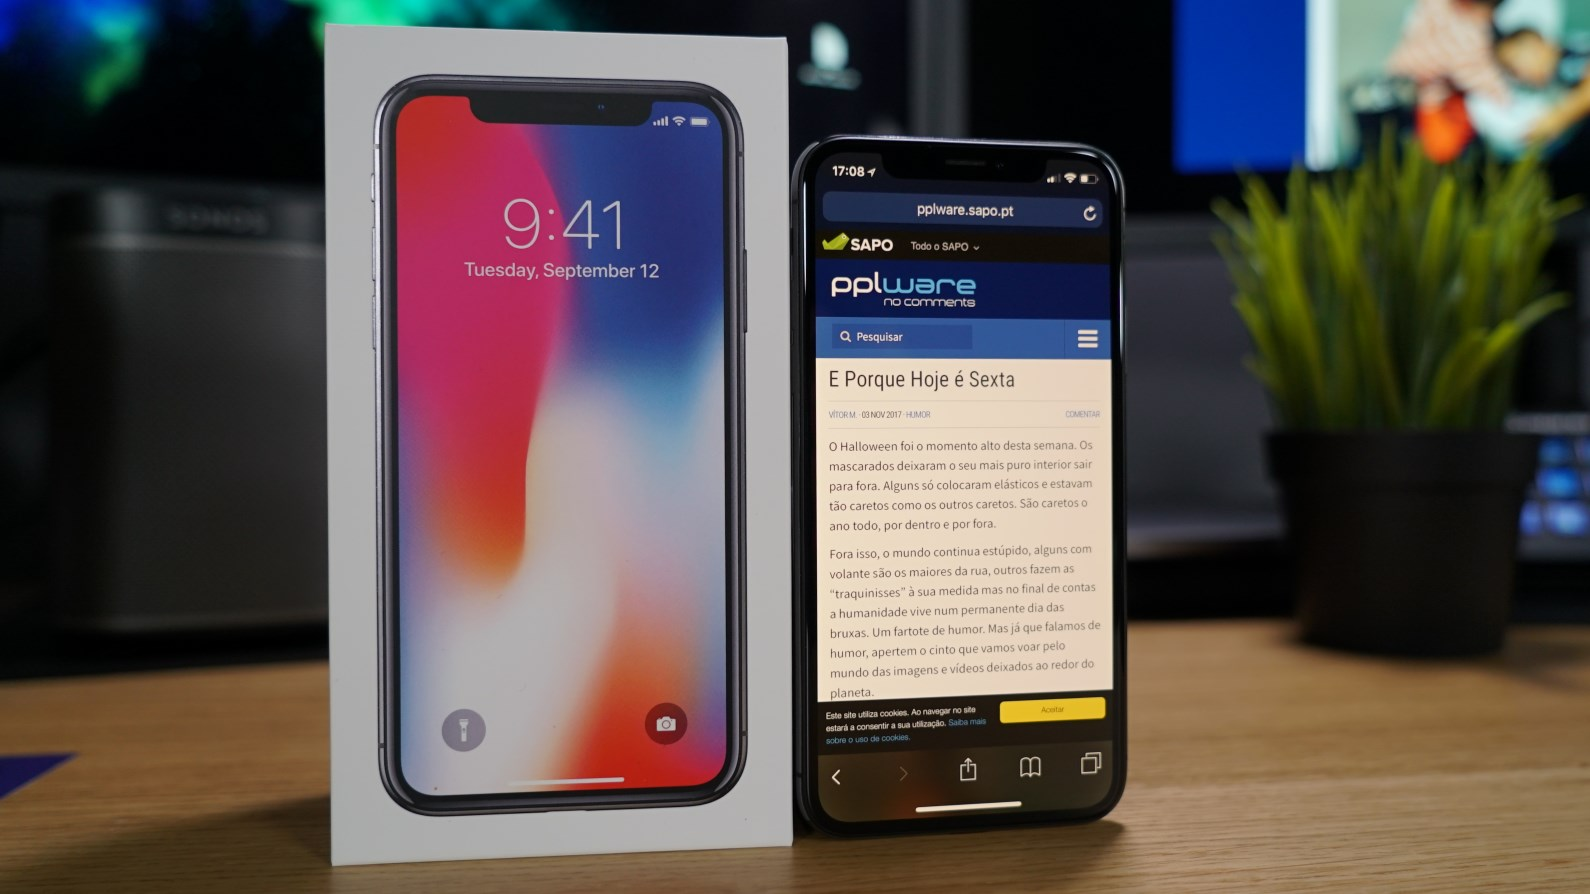 bf2a135ad Unboxing - Apple iPhone X - Pplware